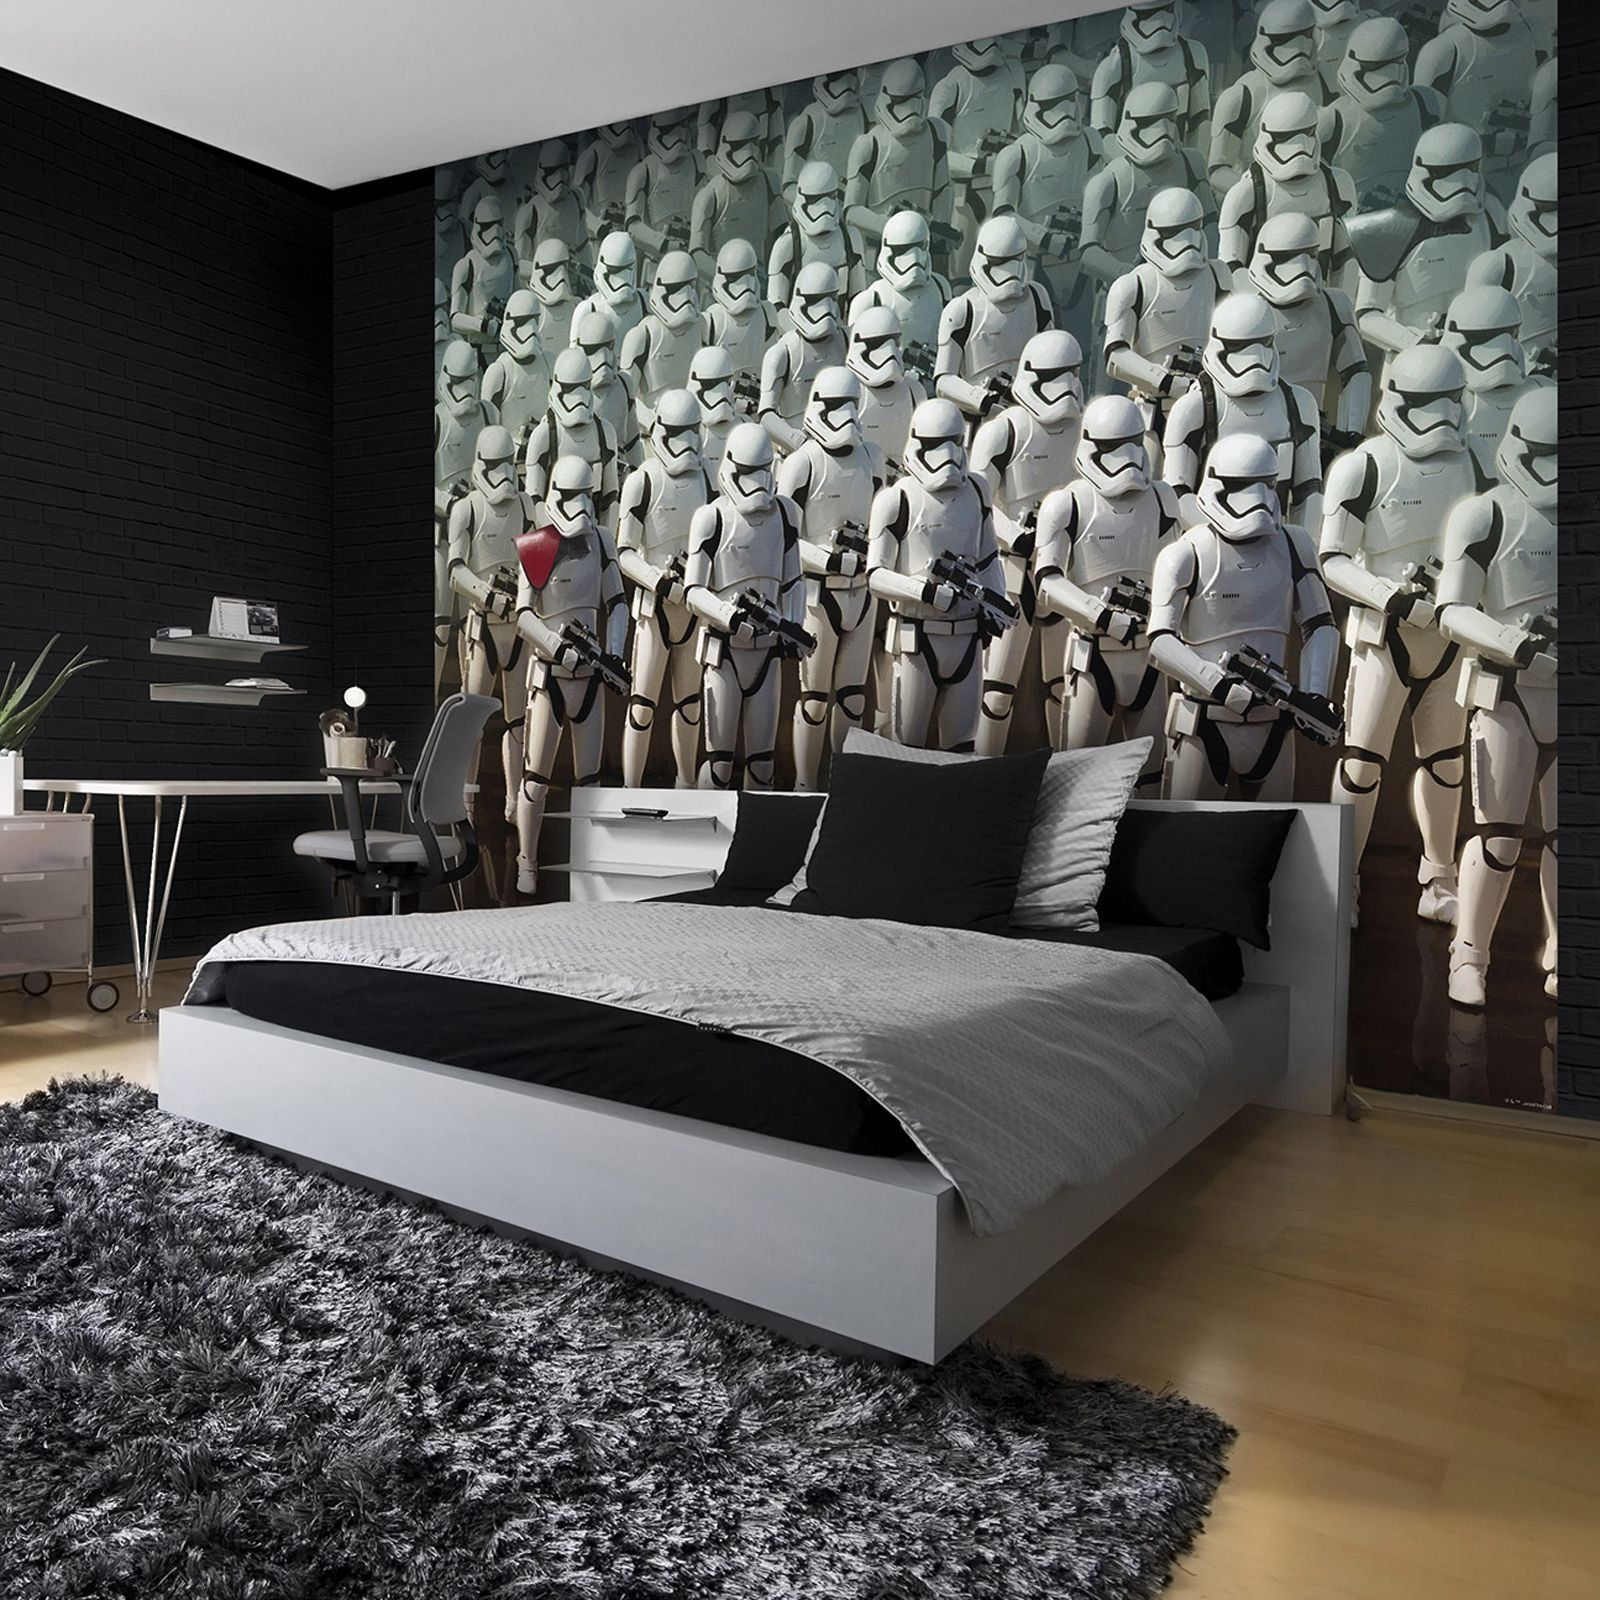 star wars stormtrooper wall mural - dream bedroom | star wars room